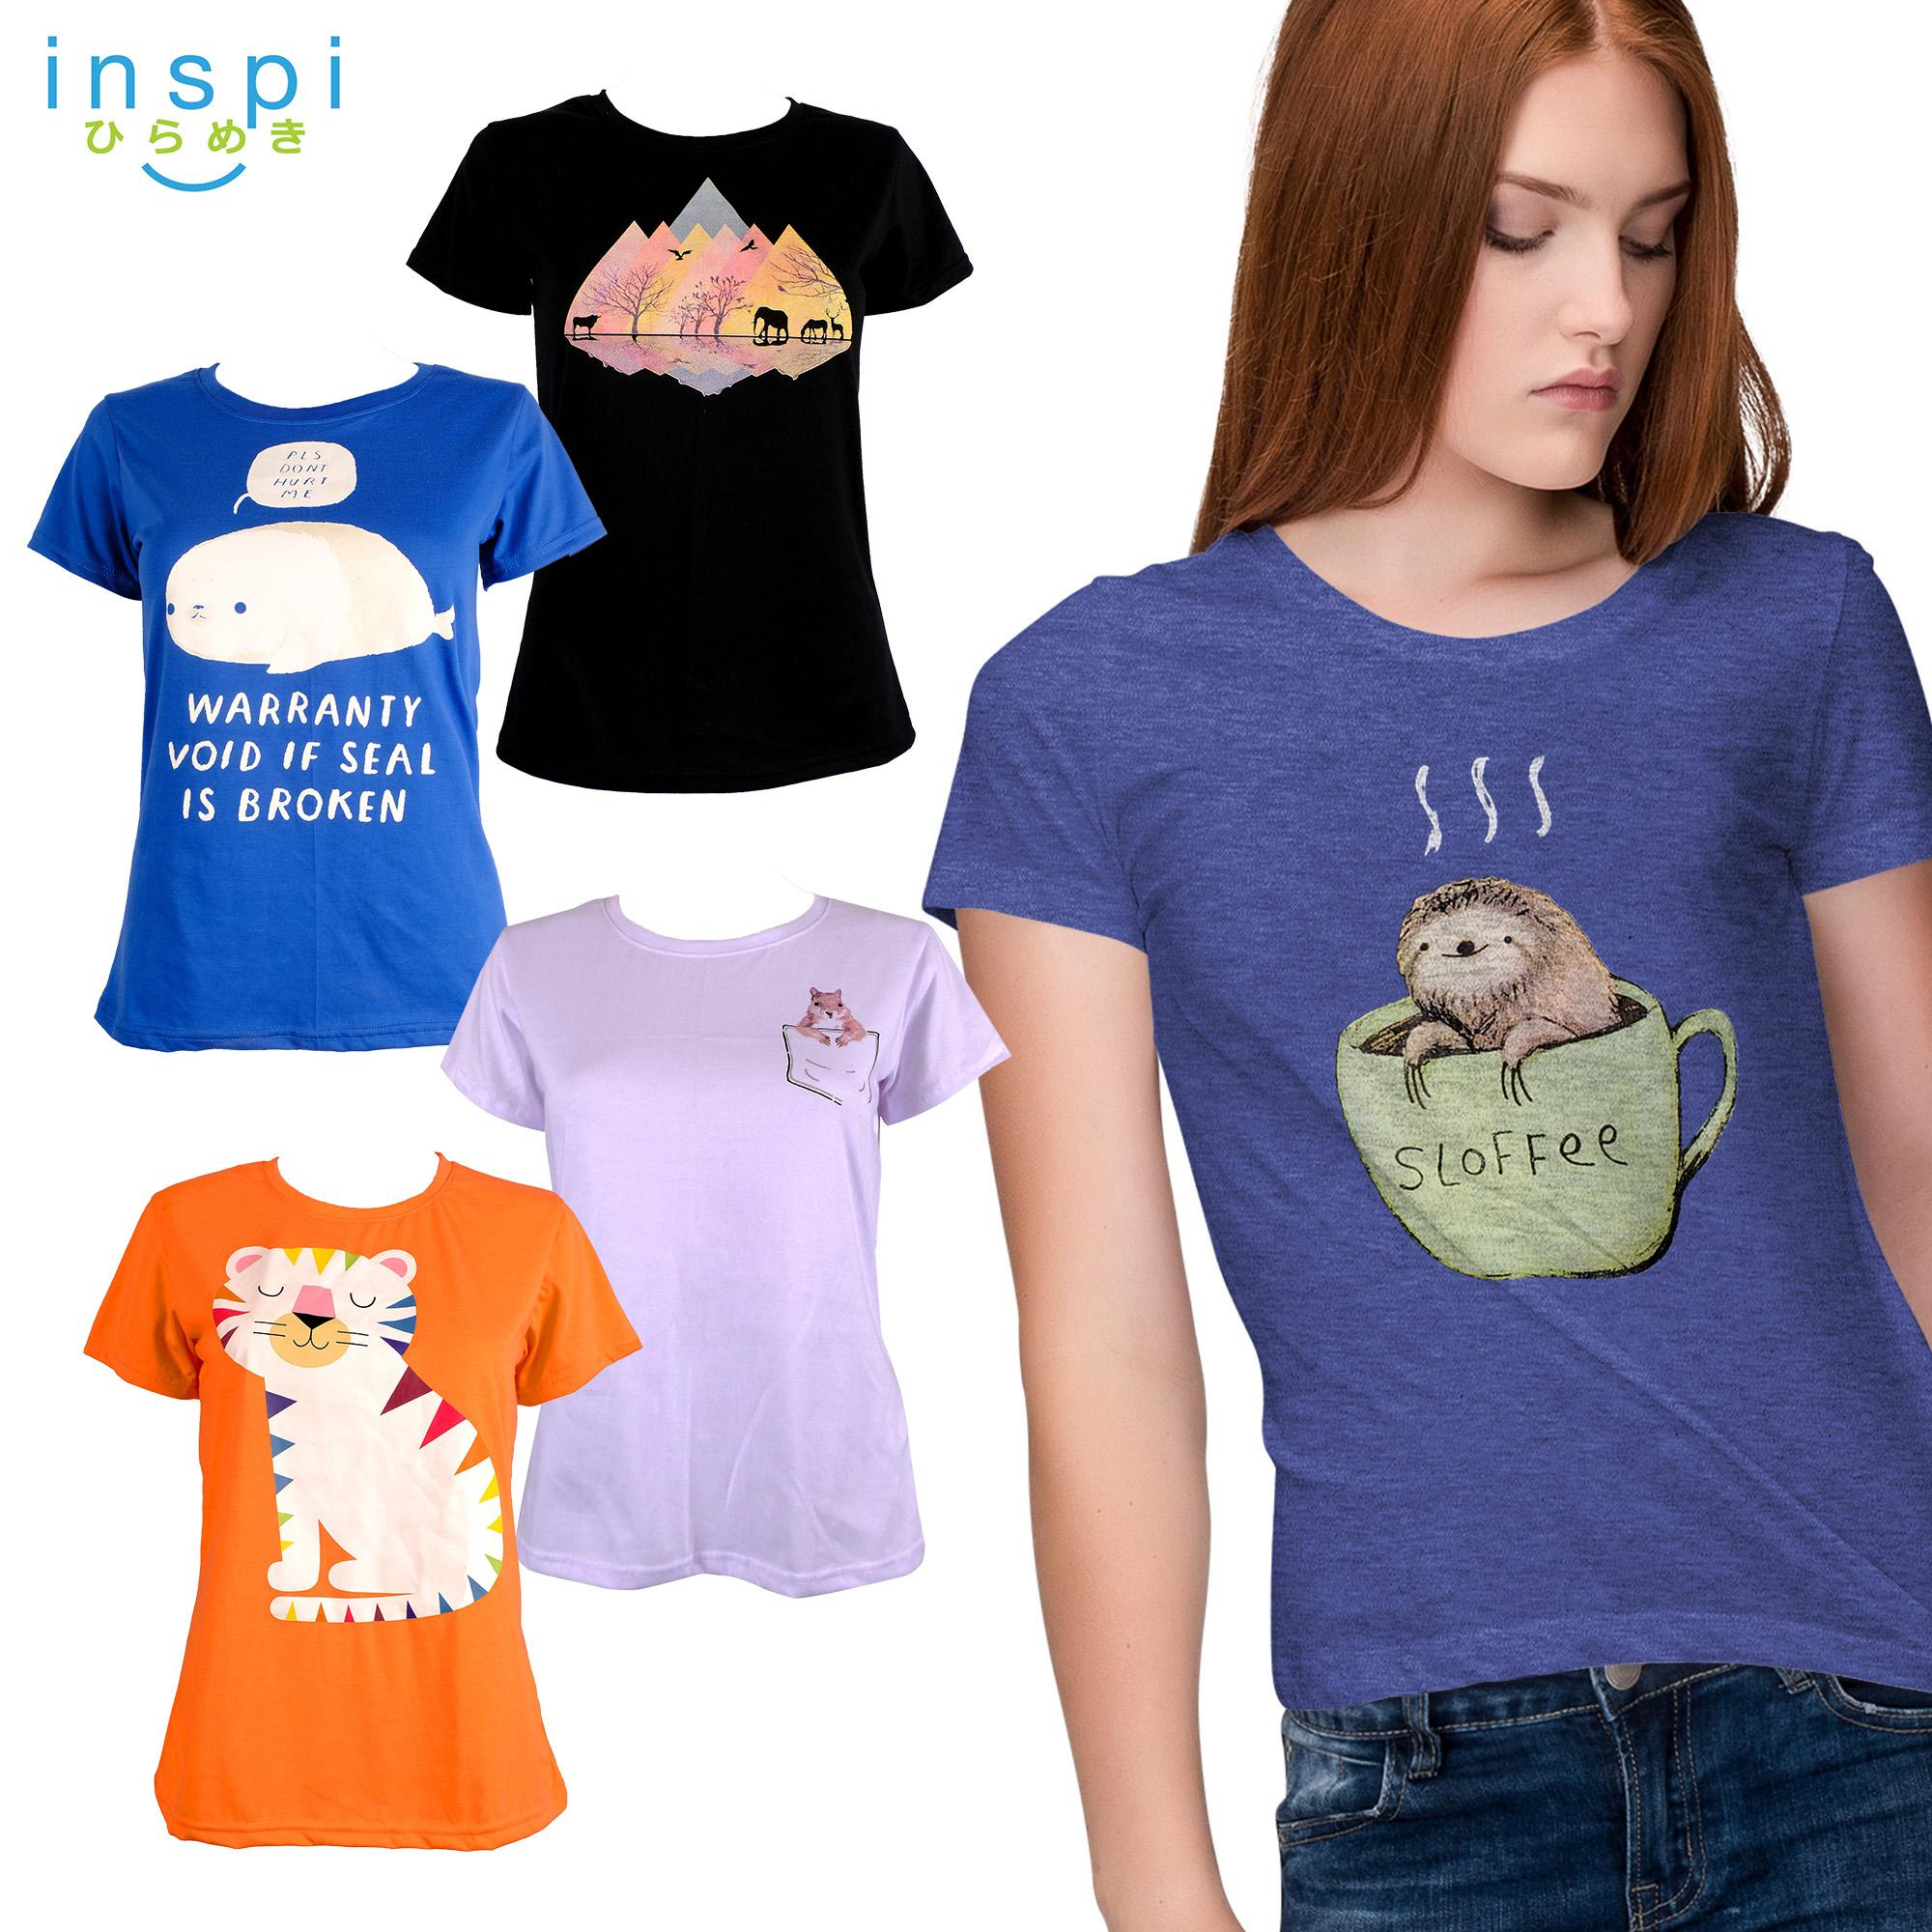 1663c5b4527 INSPI Tees Ladies Pet Collection tshirt printed graphic tee Ladies t shirt shirts  women tshirts for